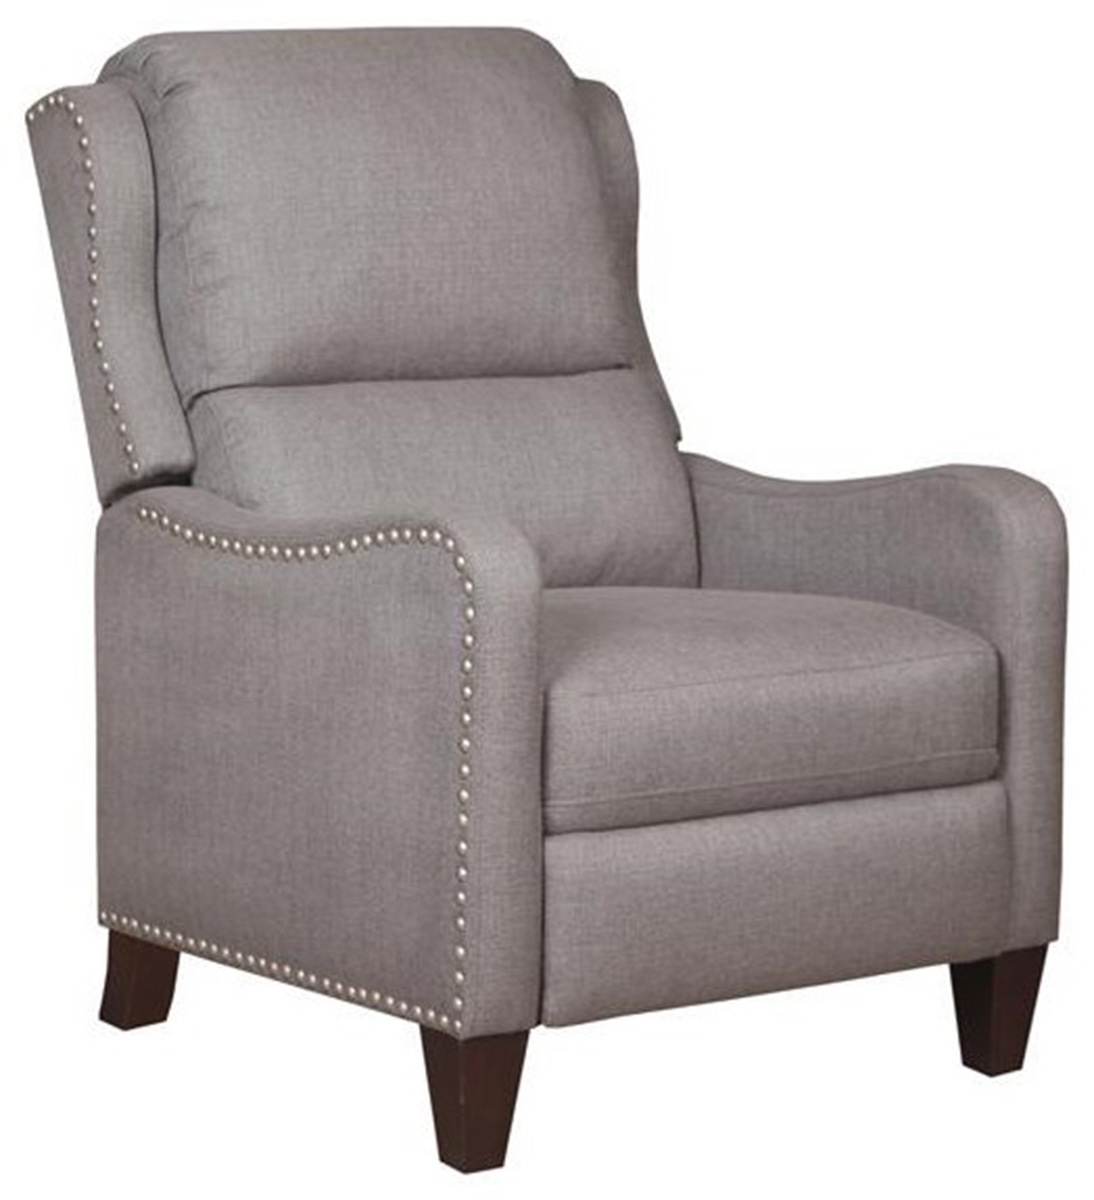 Barcalounger Addy Recliner Chair - Samantha Graystone/fabric